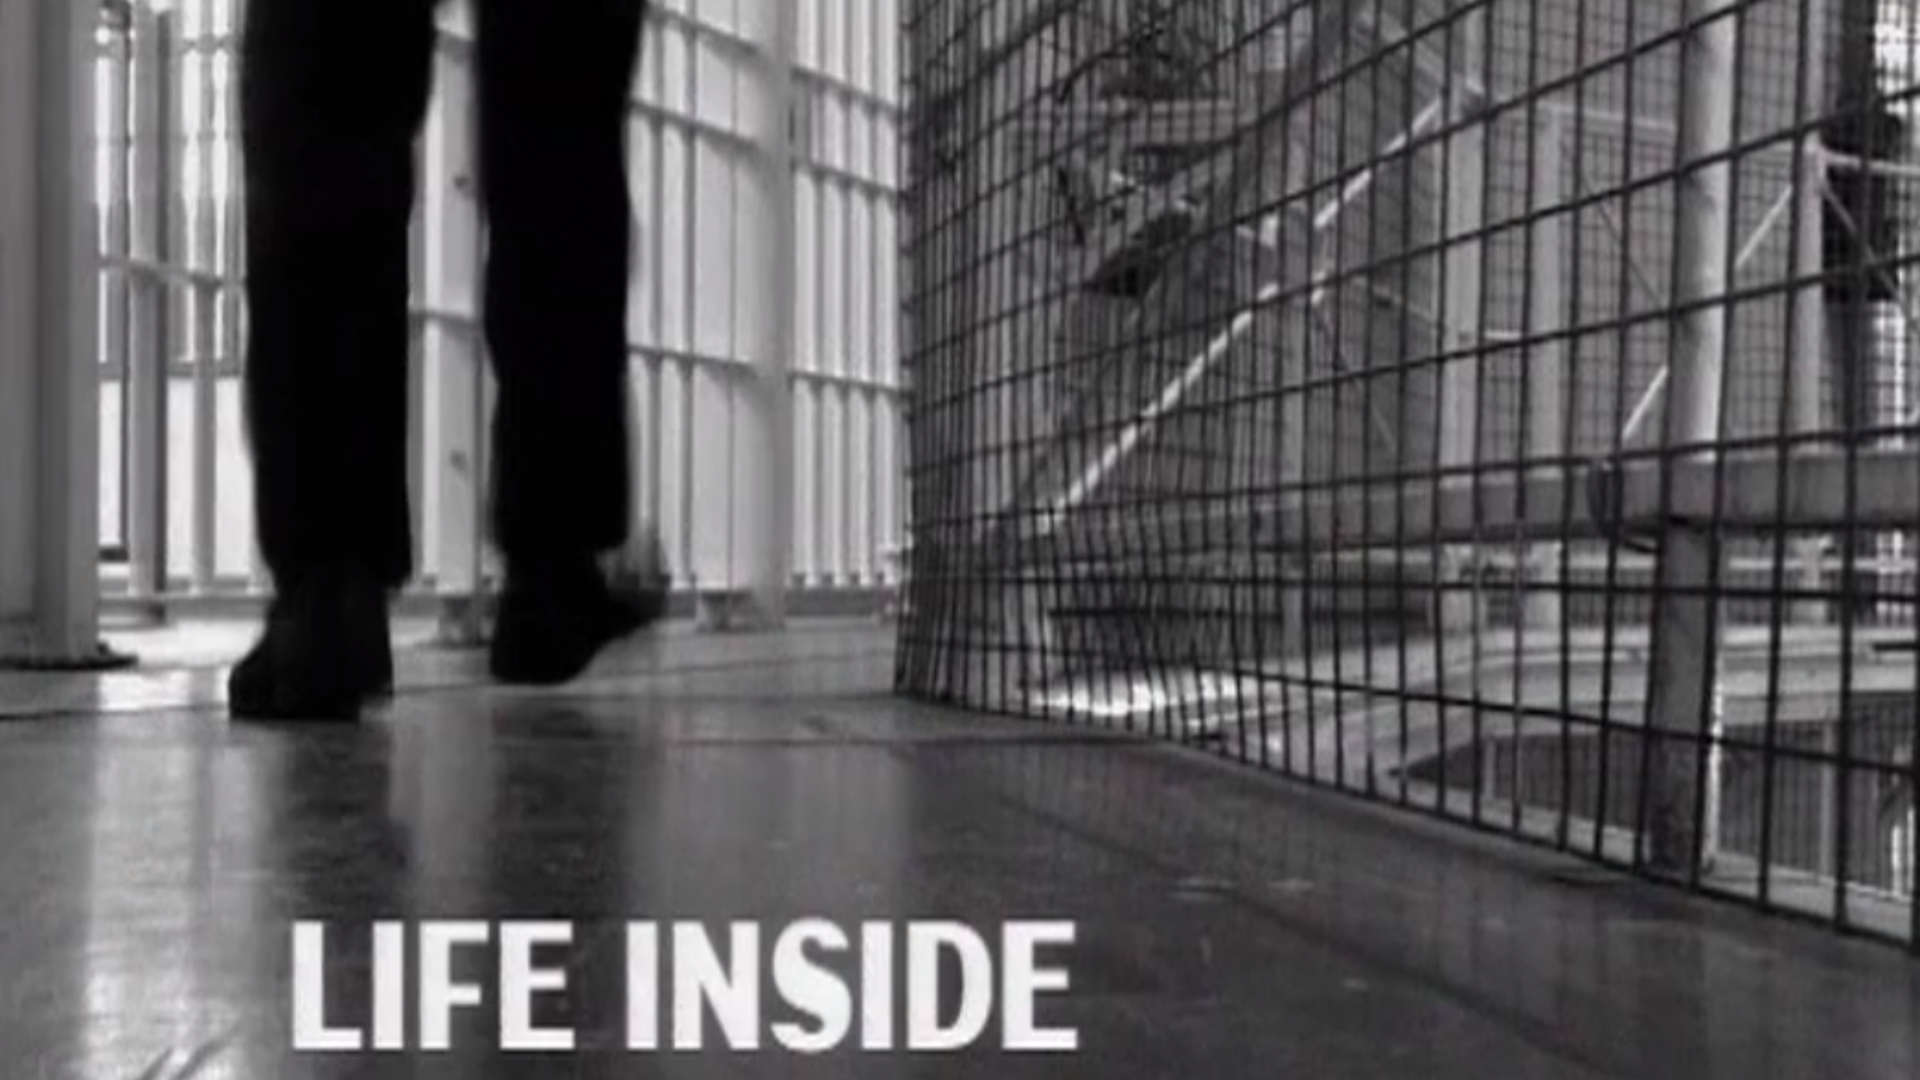 Inside the Criminal Mind - Life Inside